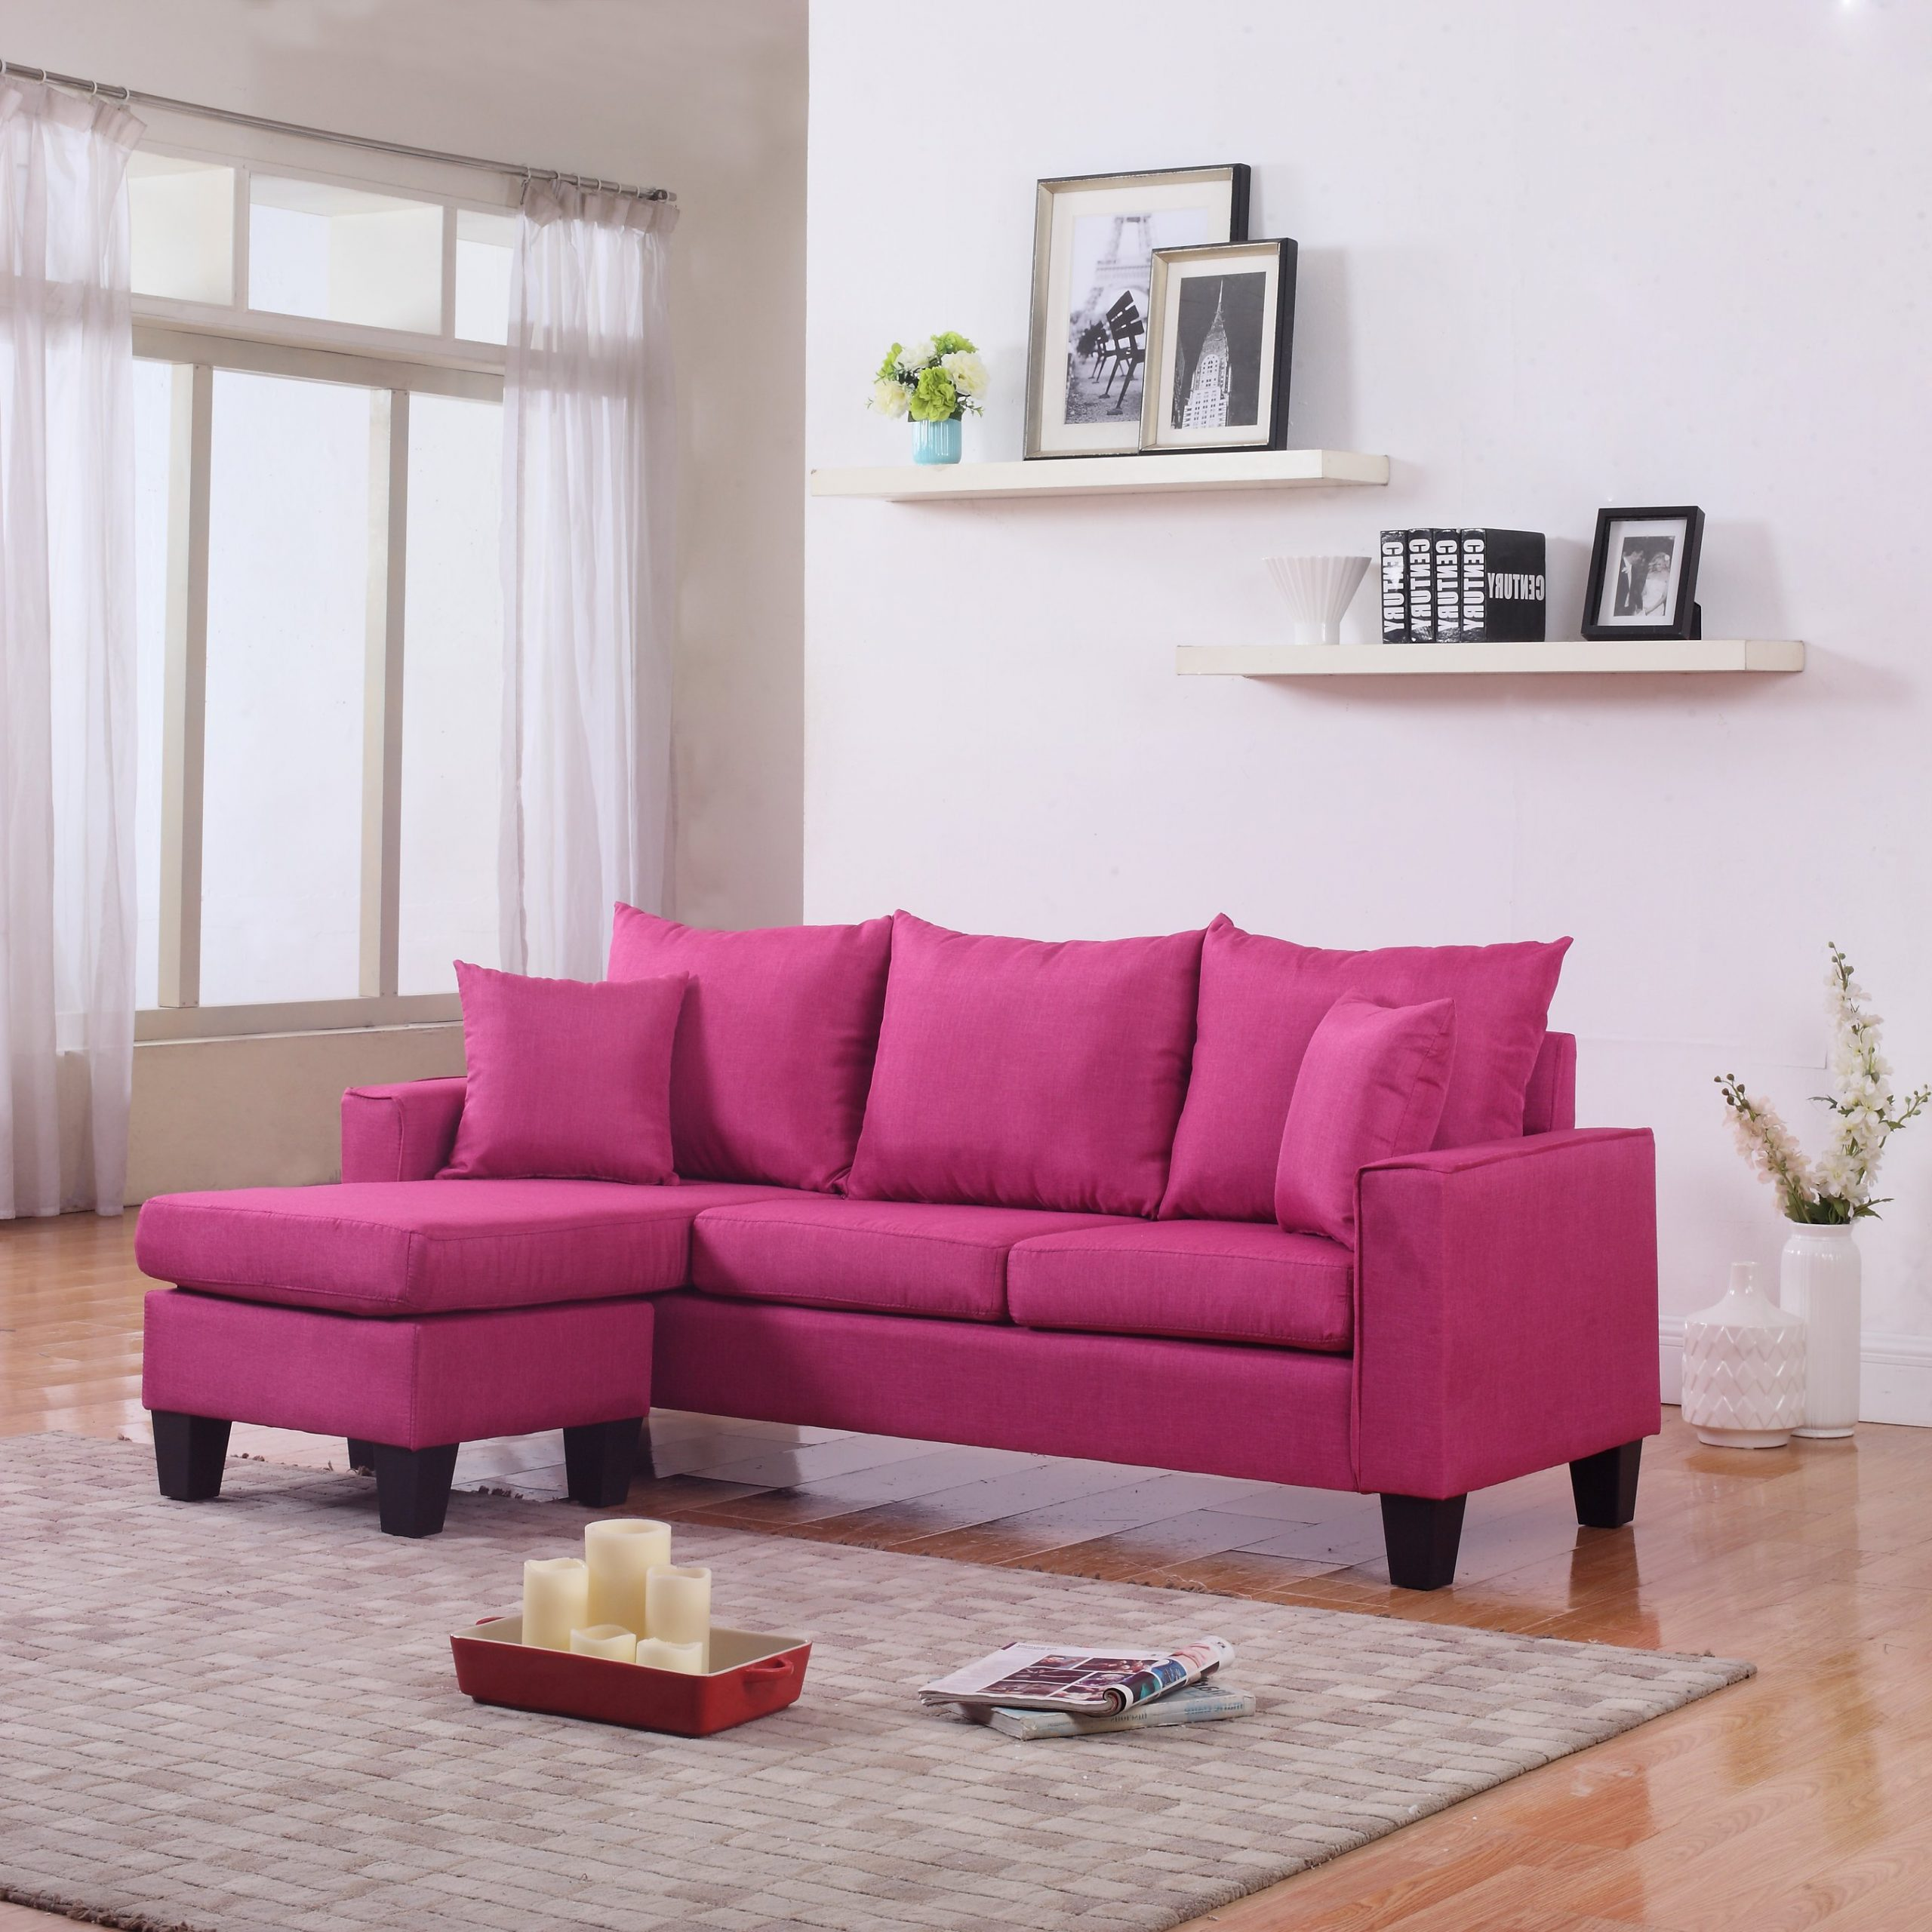 Widely Used 4Pc Crowningshield Contemporary Chaise Sectional Sofas Throughout Modern Linen Fabric Small Space Sectional Sofa With (View 4 of 25)